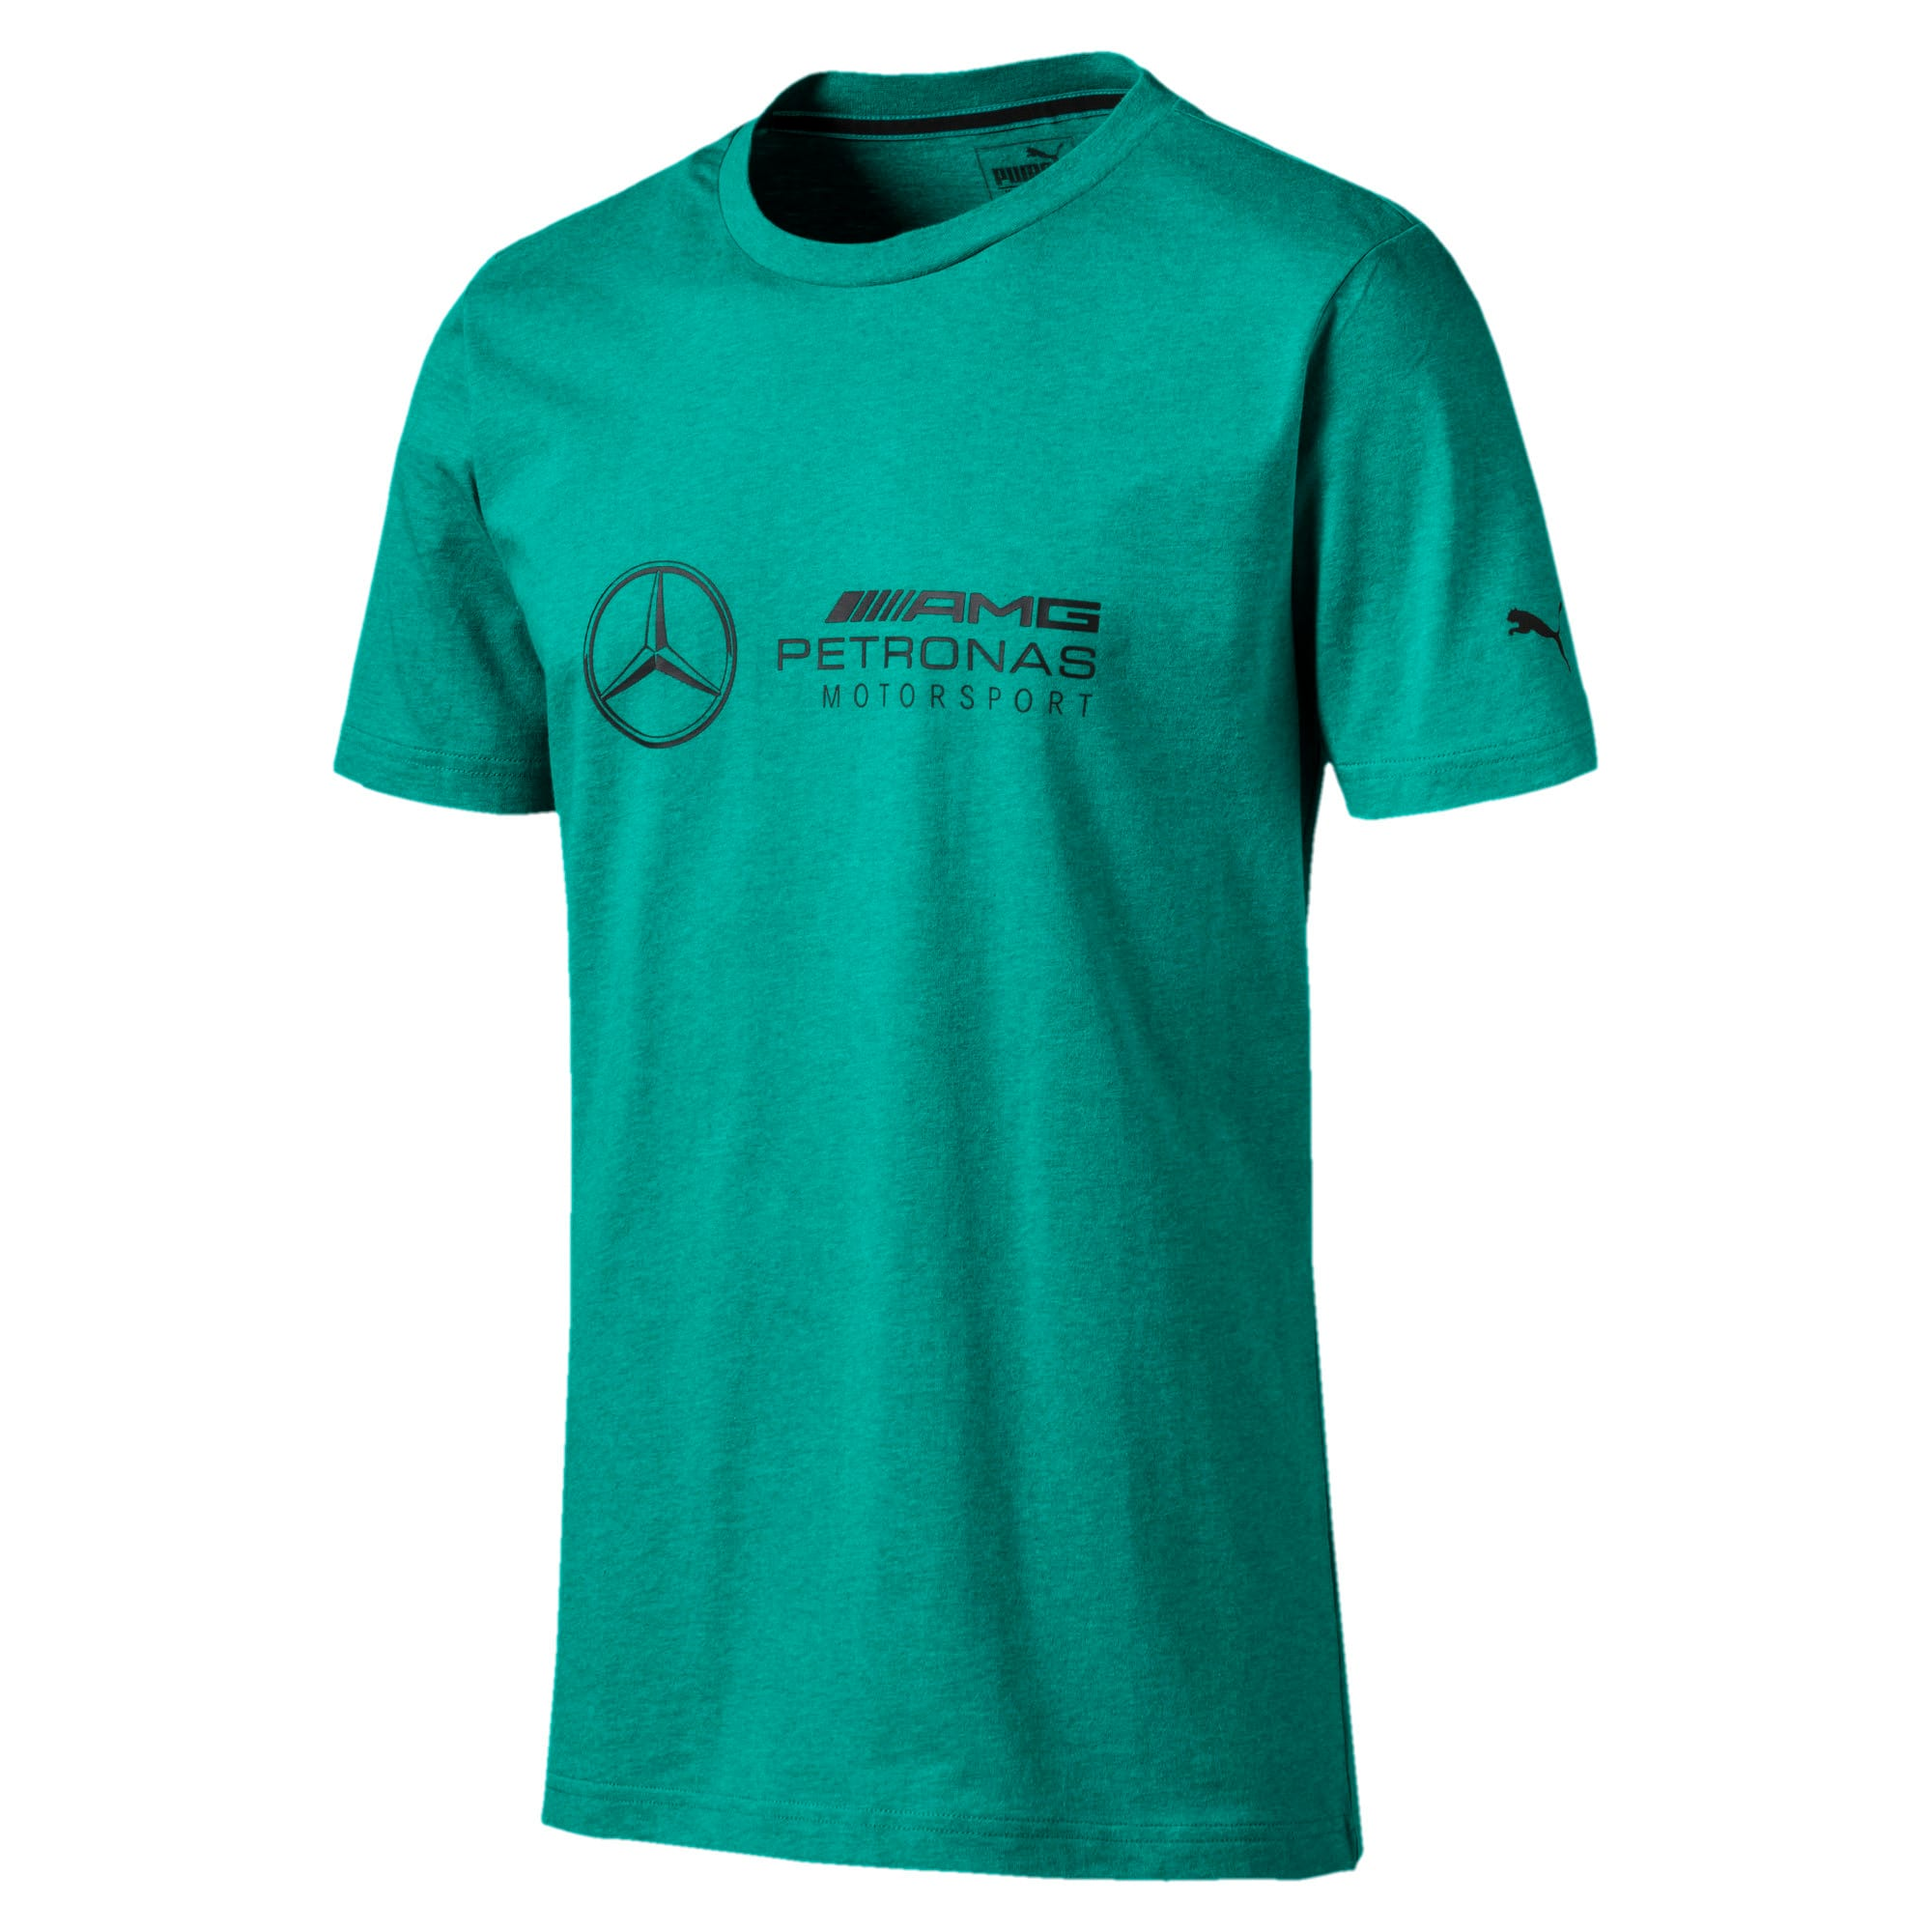 Thumbnail 4 of T-shirt Mercedes AMG Petronas uomo, Spectra Green Heather, medium